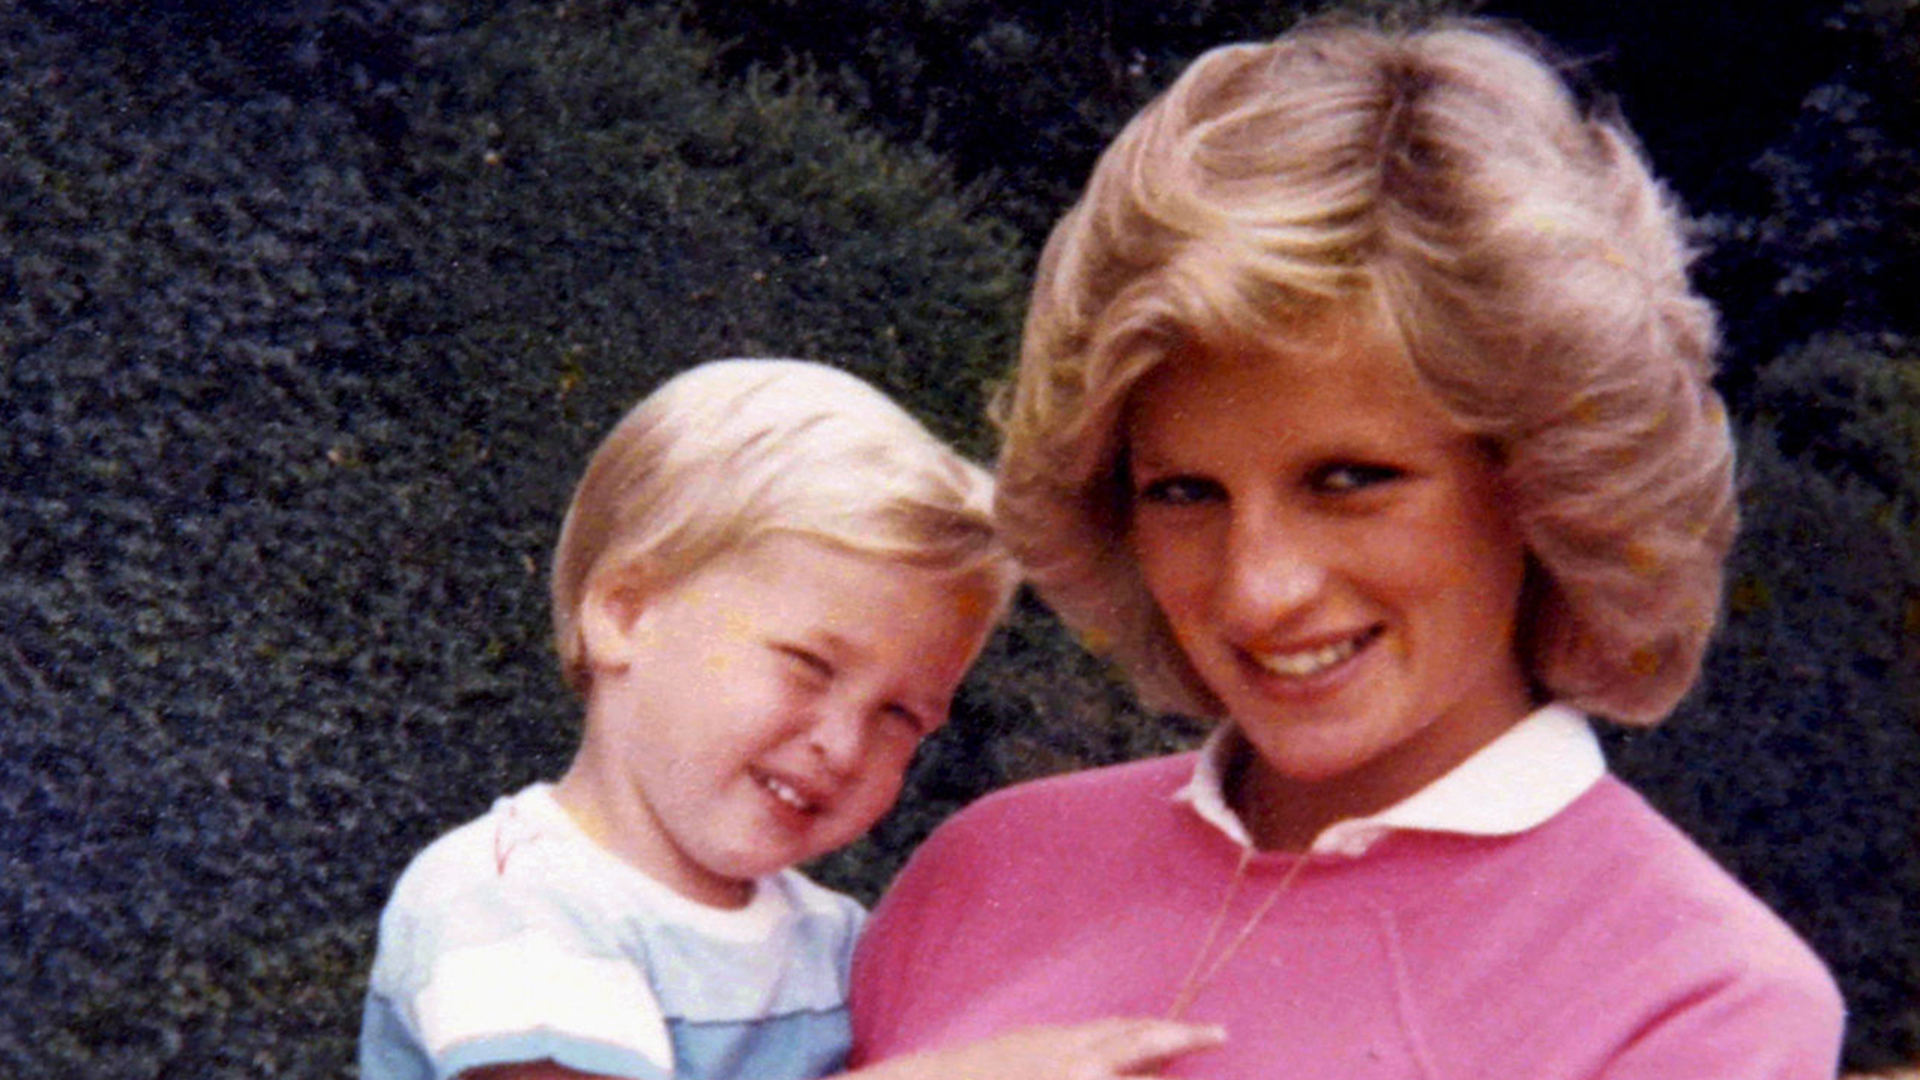 Princes William, Harry recall final phone conversation with their late mother